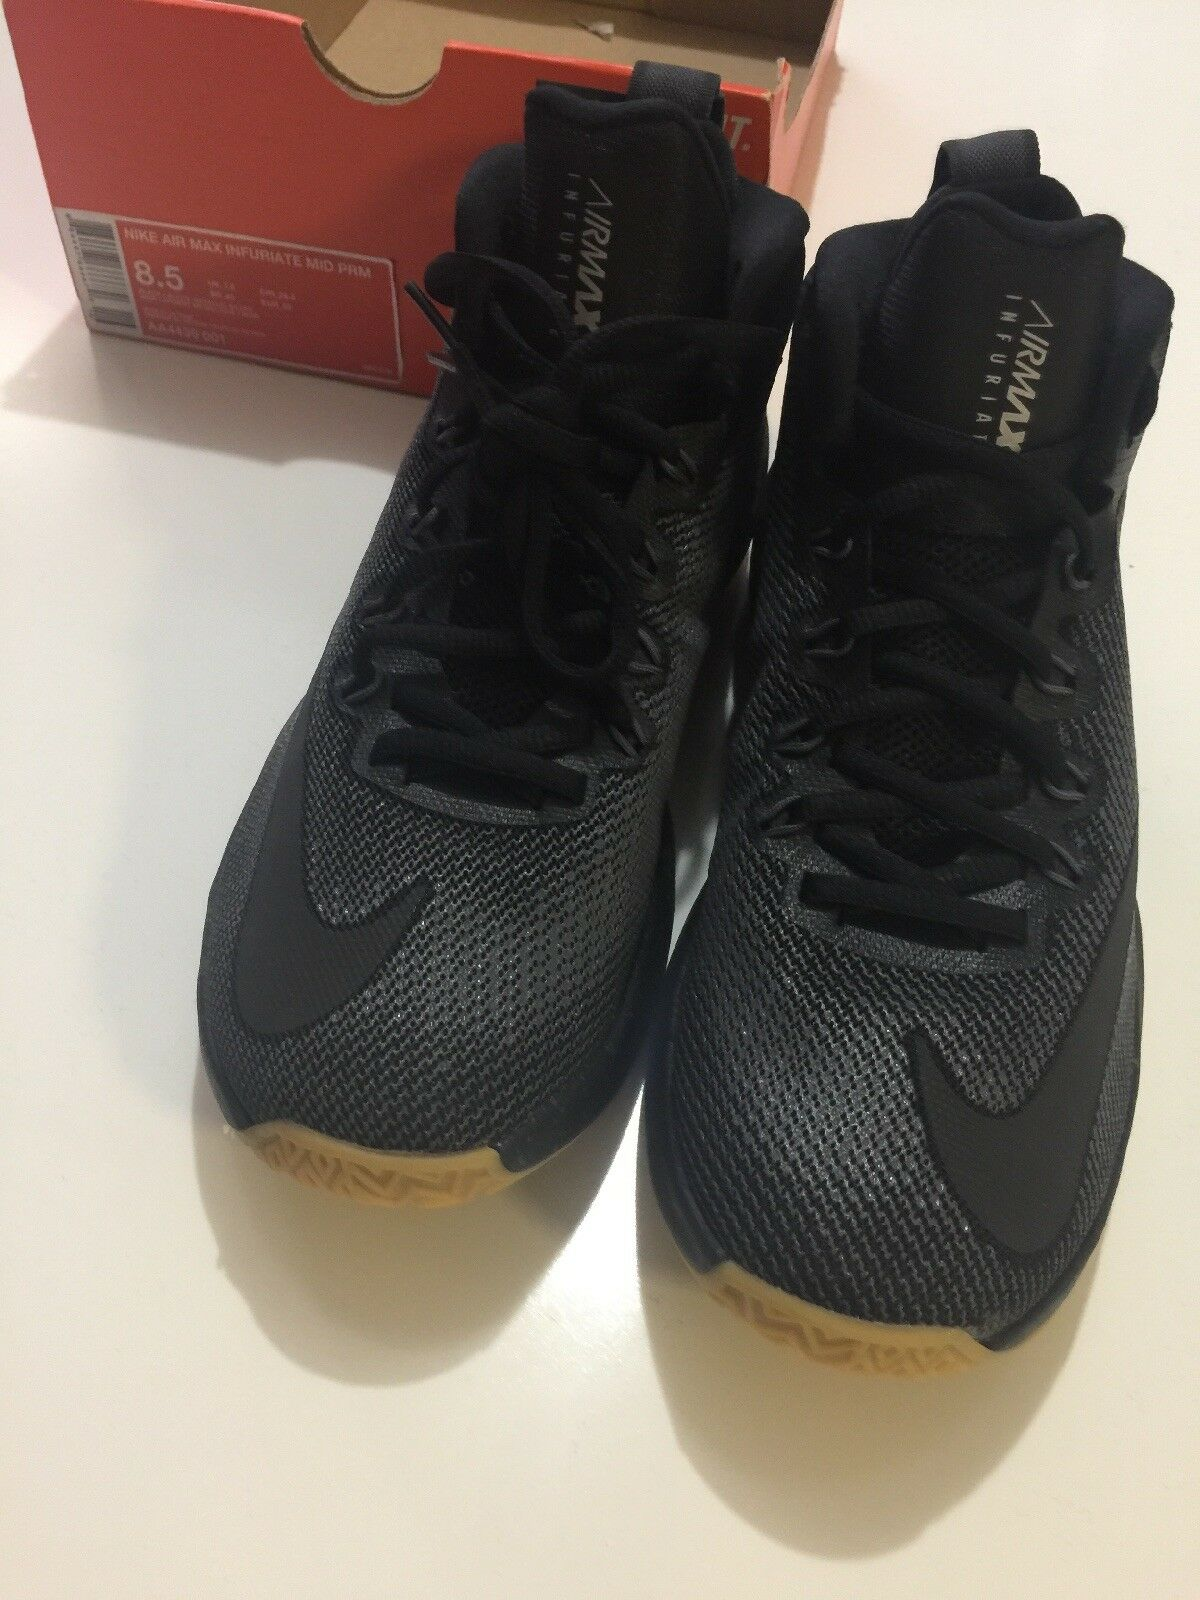 NIKE AIR MAX INFURIATE MID PRM MENS SHOES AA4439 001 001 001 Size 8.5 WITH BOX No Top d1580e